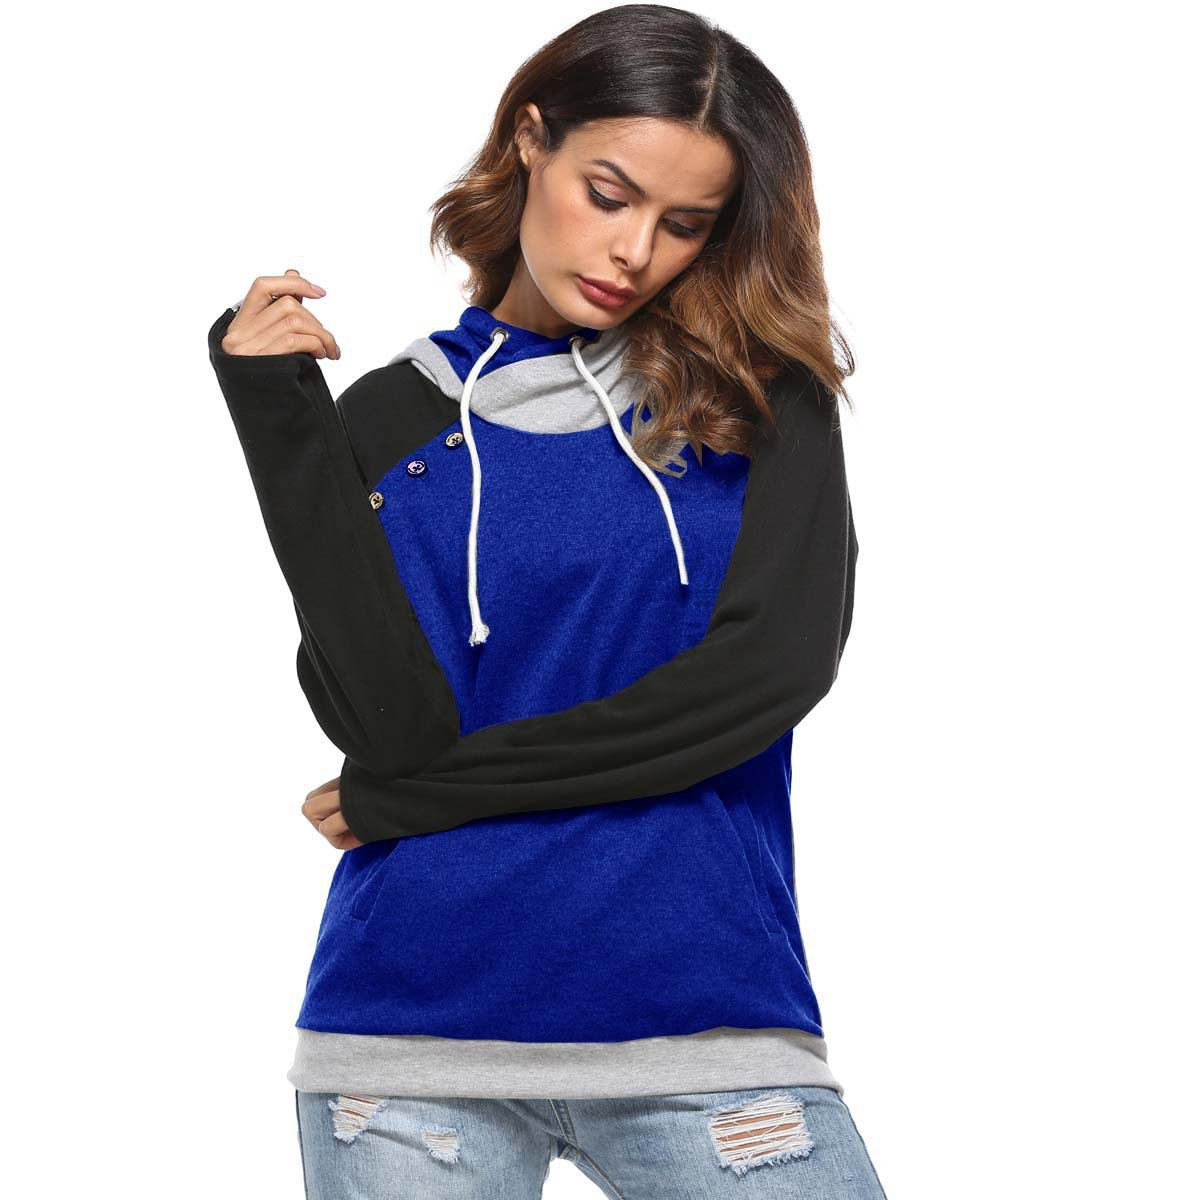 Crazycatz Womens Color Blocking Sweatshirts Sports Pullover Tops Hoodies with Pockets Blue, M